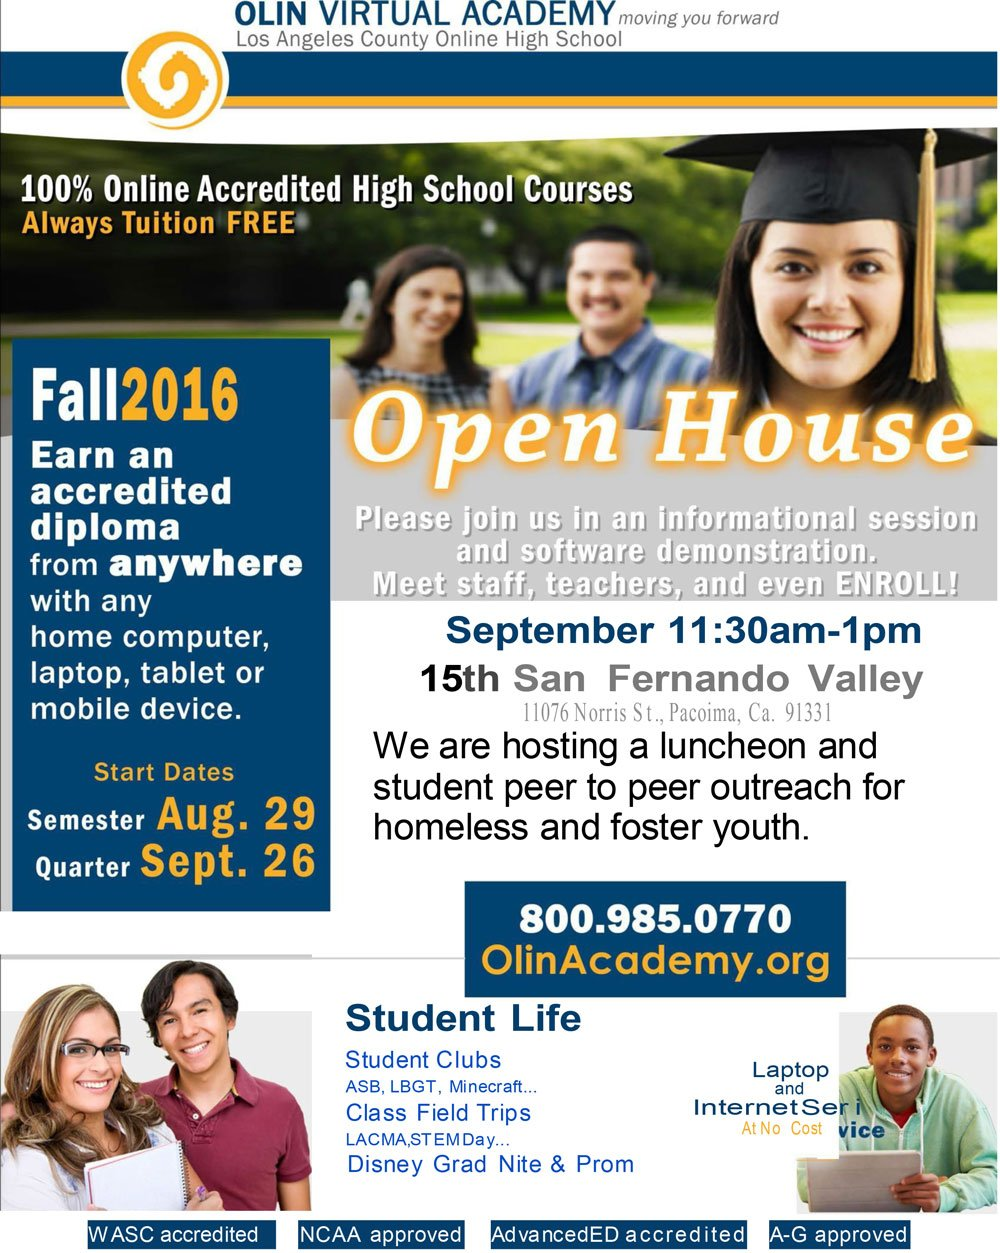 LA County Online High School – Homeless Student Outreach Luncheon